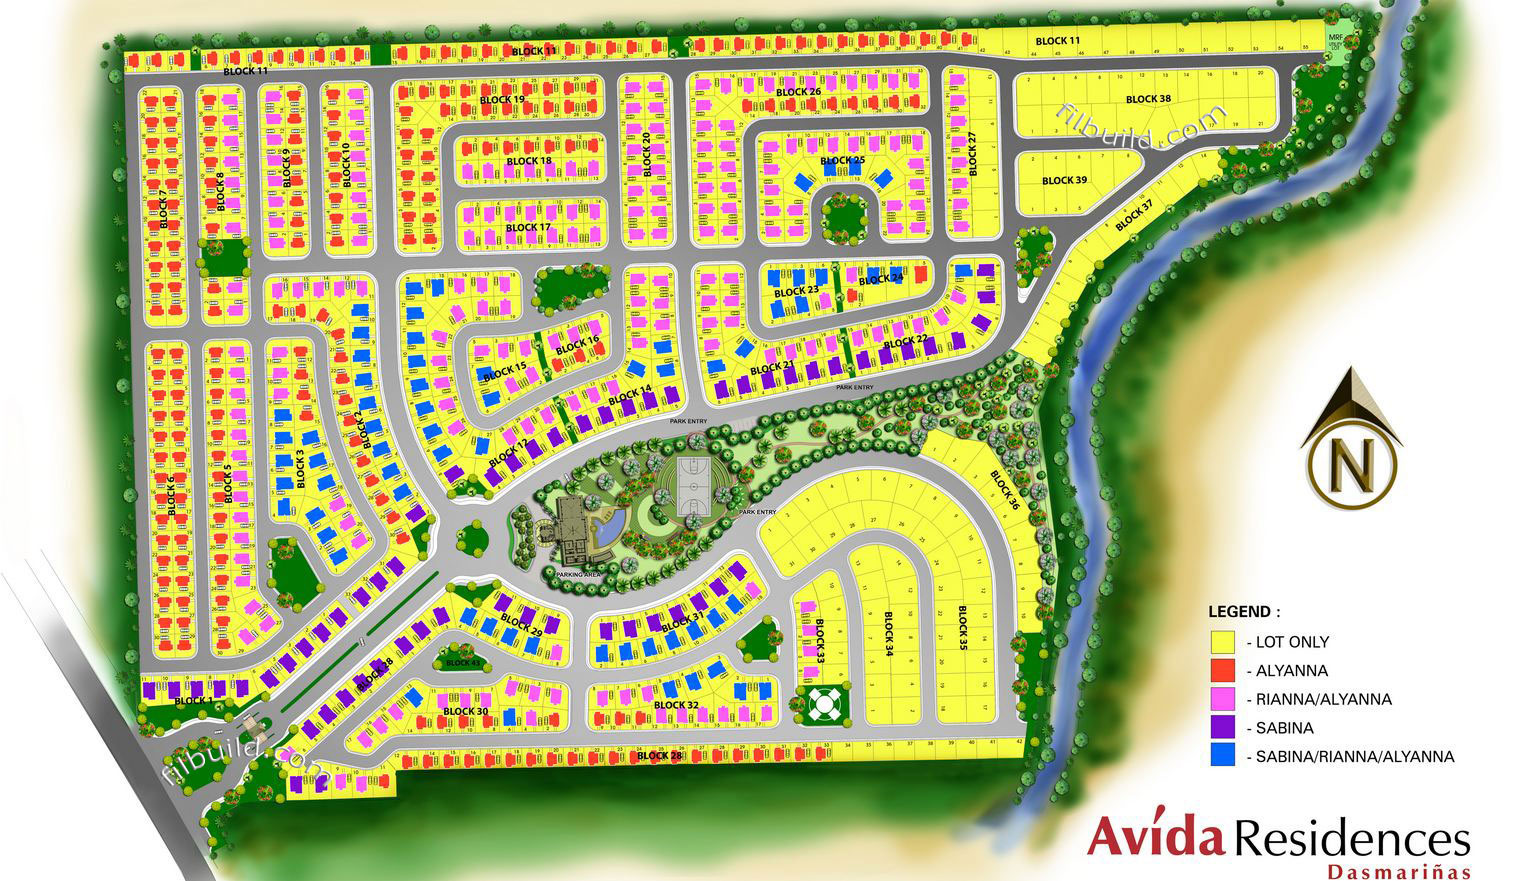 electrical plan blueprint cavite real estate home lot for sale at avida residences #13